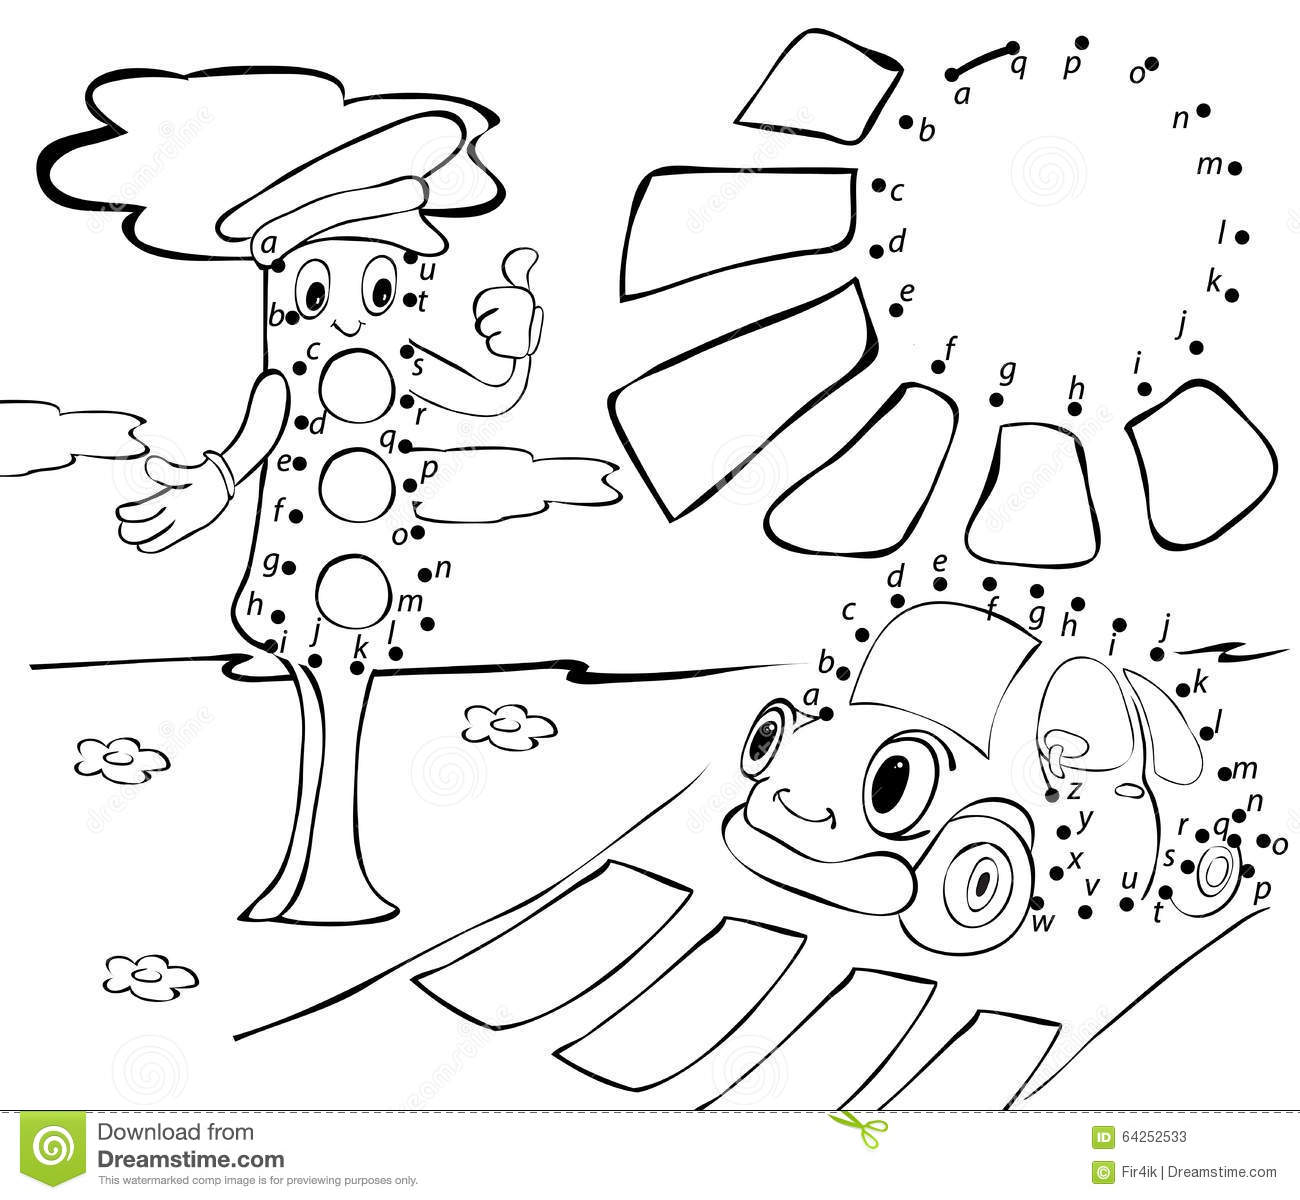 Cute Traffic Light Coloring Coloring Pages